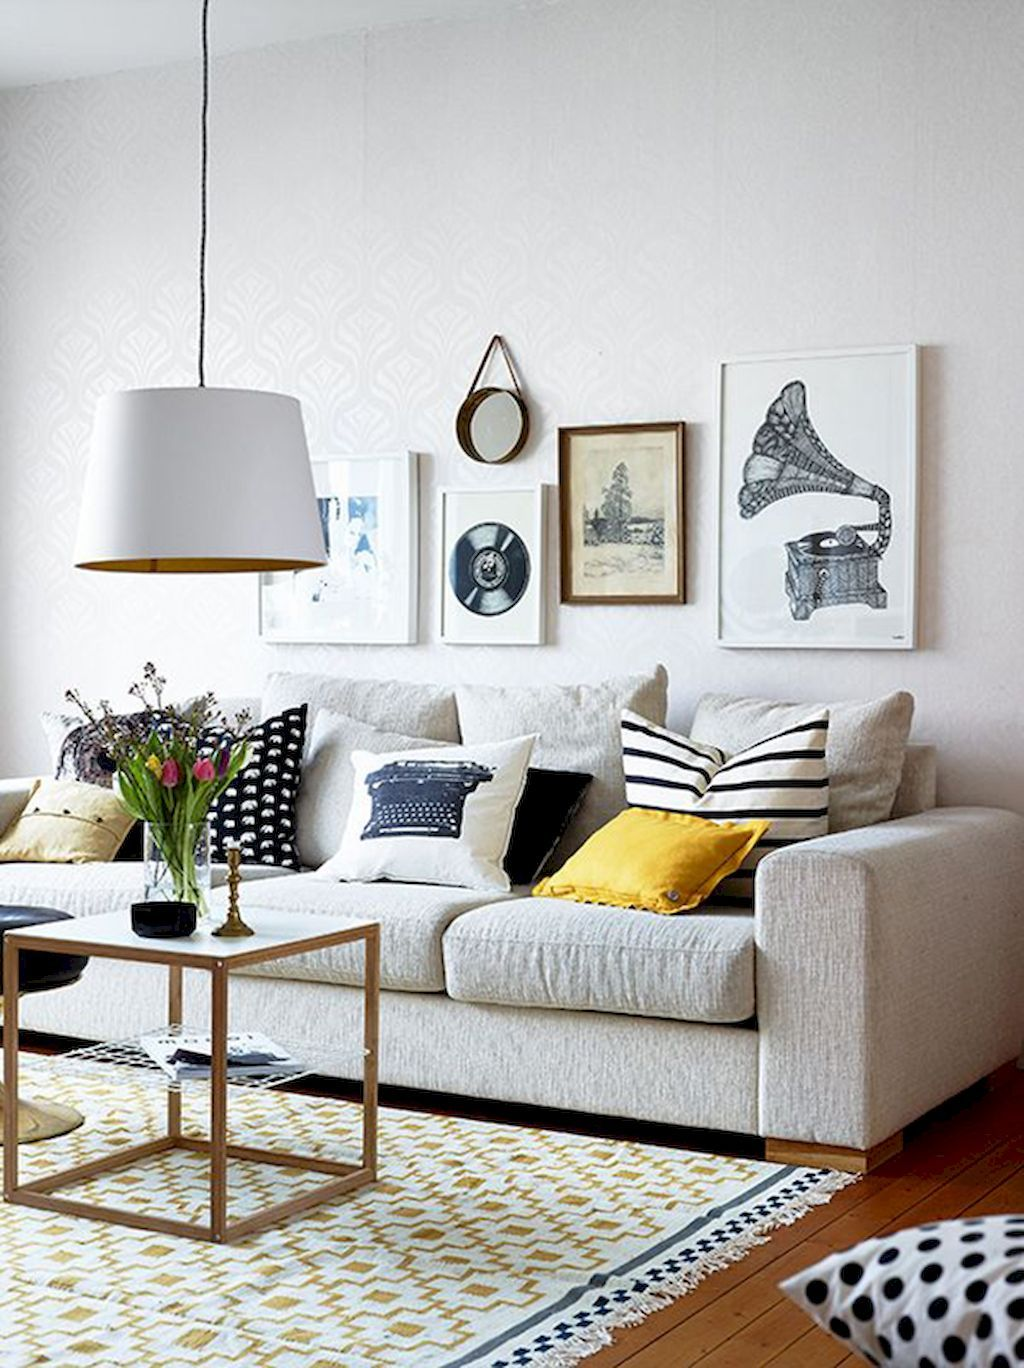 Gorgeous Scandinavian Living Room Design Trends AAA SMALL - Bright interior design small budget small apartment decorating scandinavian style